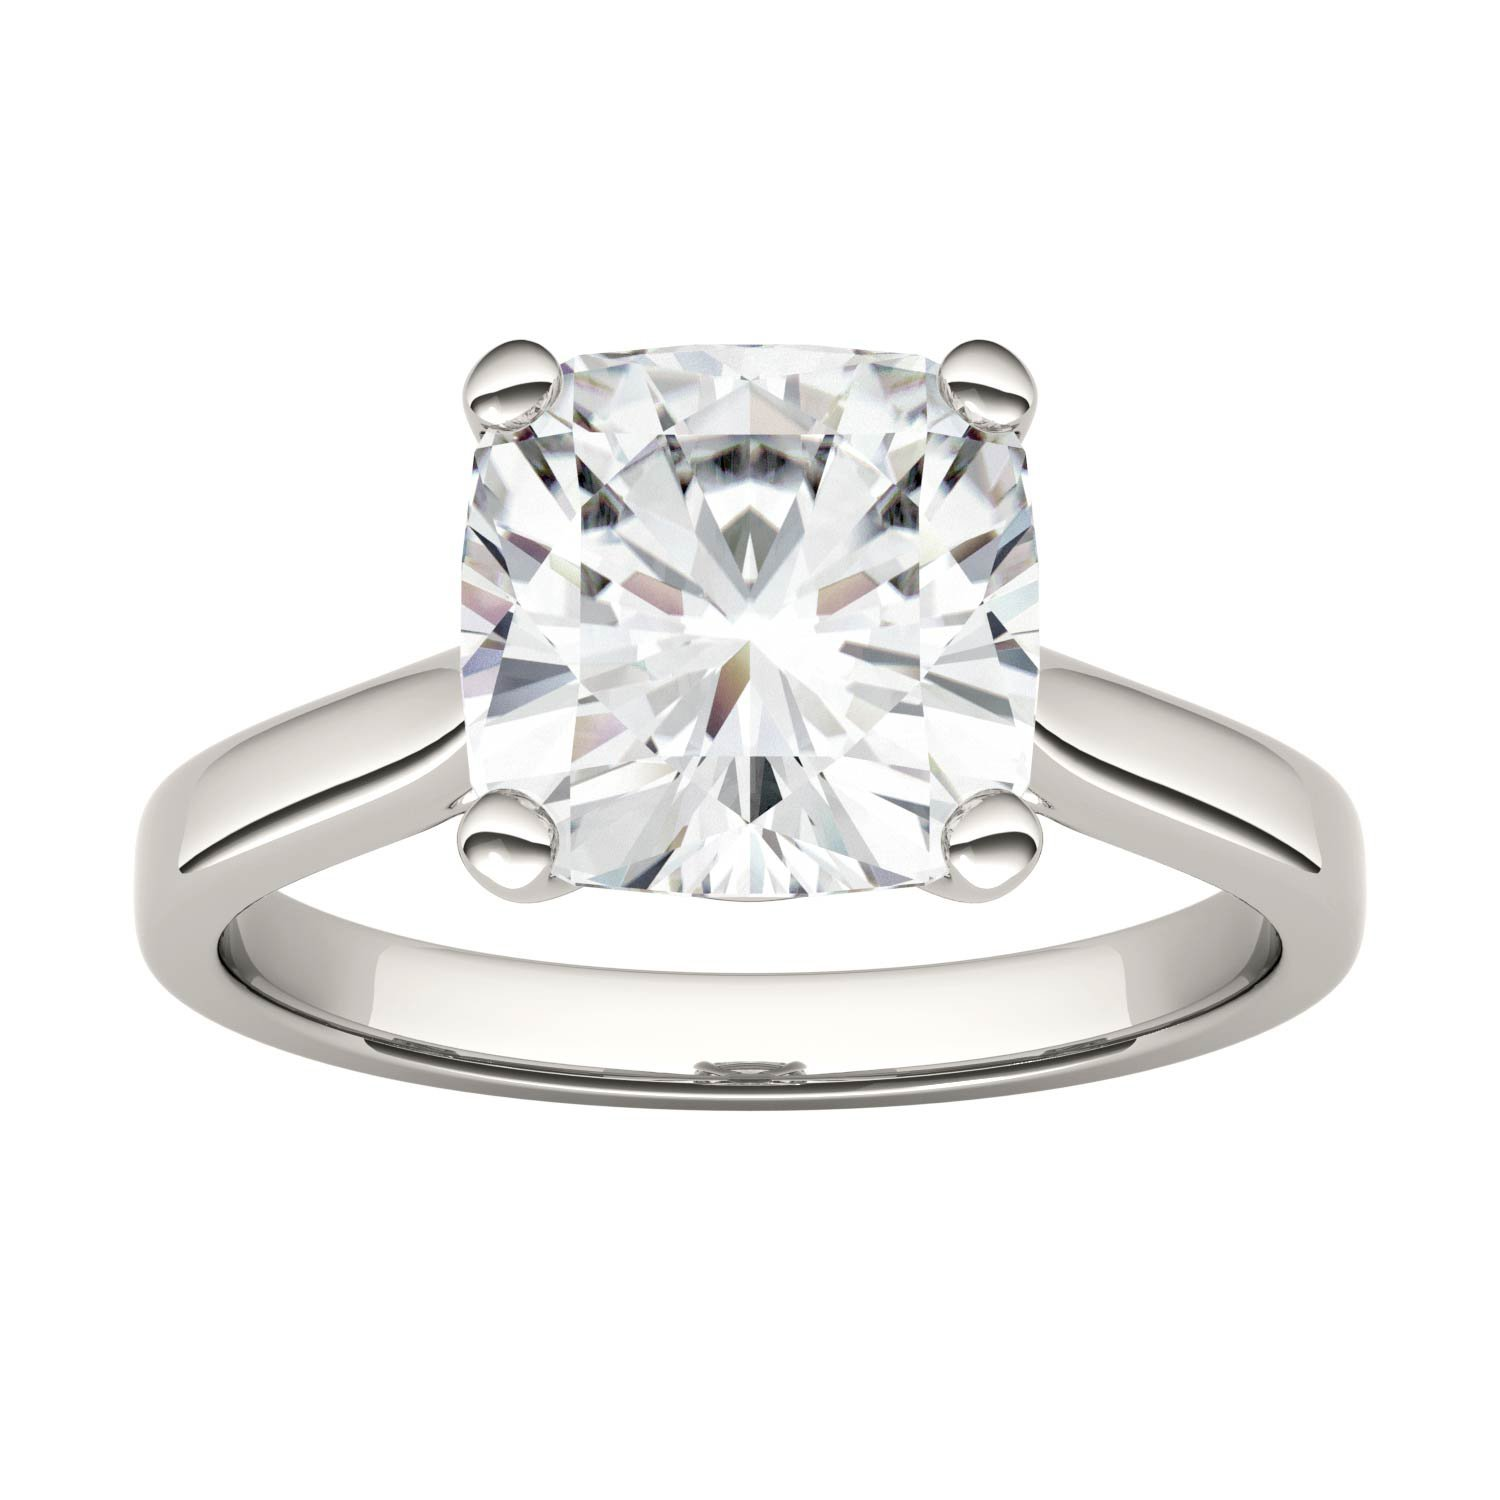 Forever One Cushion 9.0mm Moissanite Engagement Ring-size 7, 3.30ct DEW (D-E-F) by Charles & Colvard